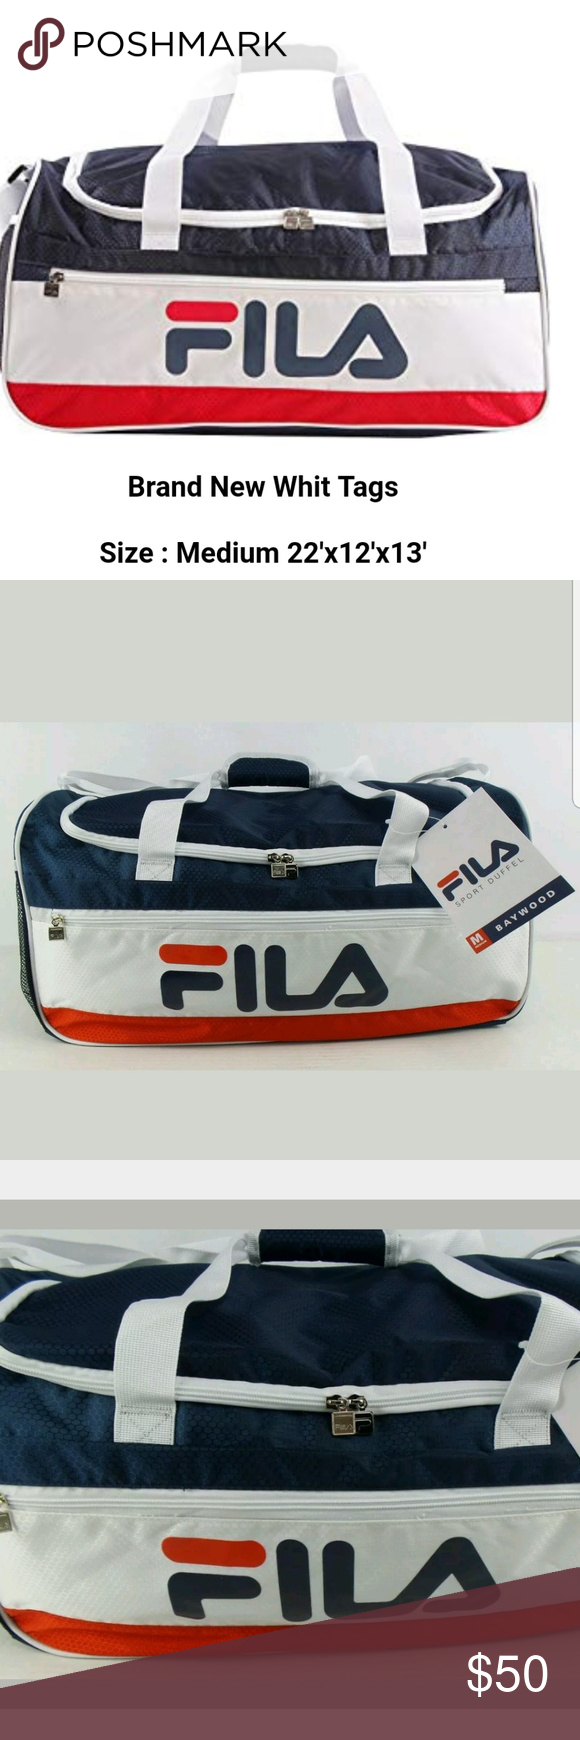 NEW Fila BayWood Sports Duffle Gym Bag. NEW Fila BayWood Sports Duffle Gym  Bag. Brand New Whit Tags Size   Medium 22 x12 x13  Fila Other 950528f649991